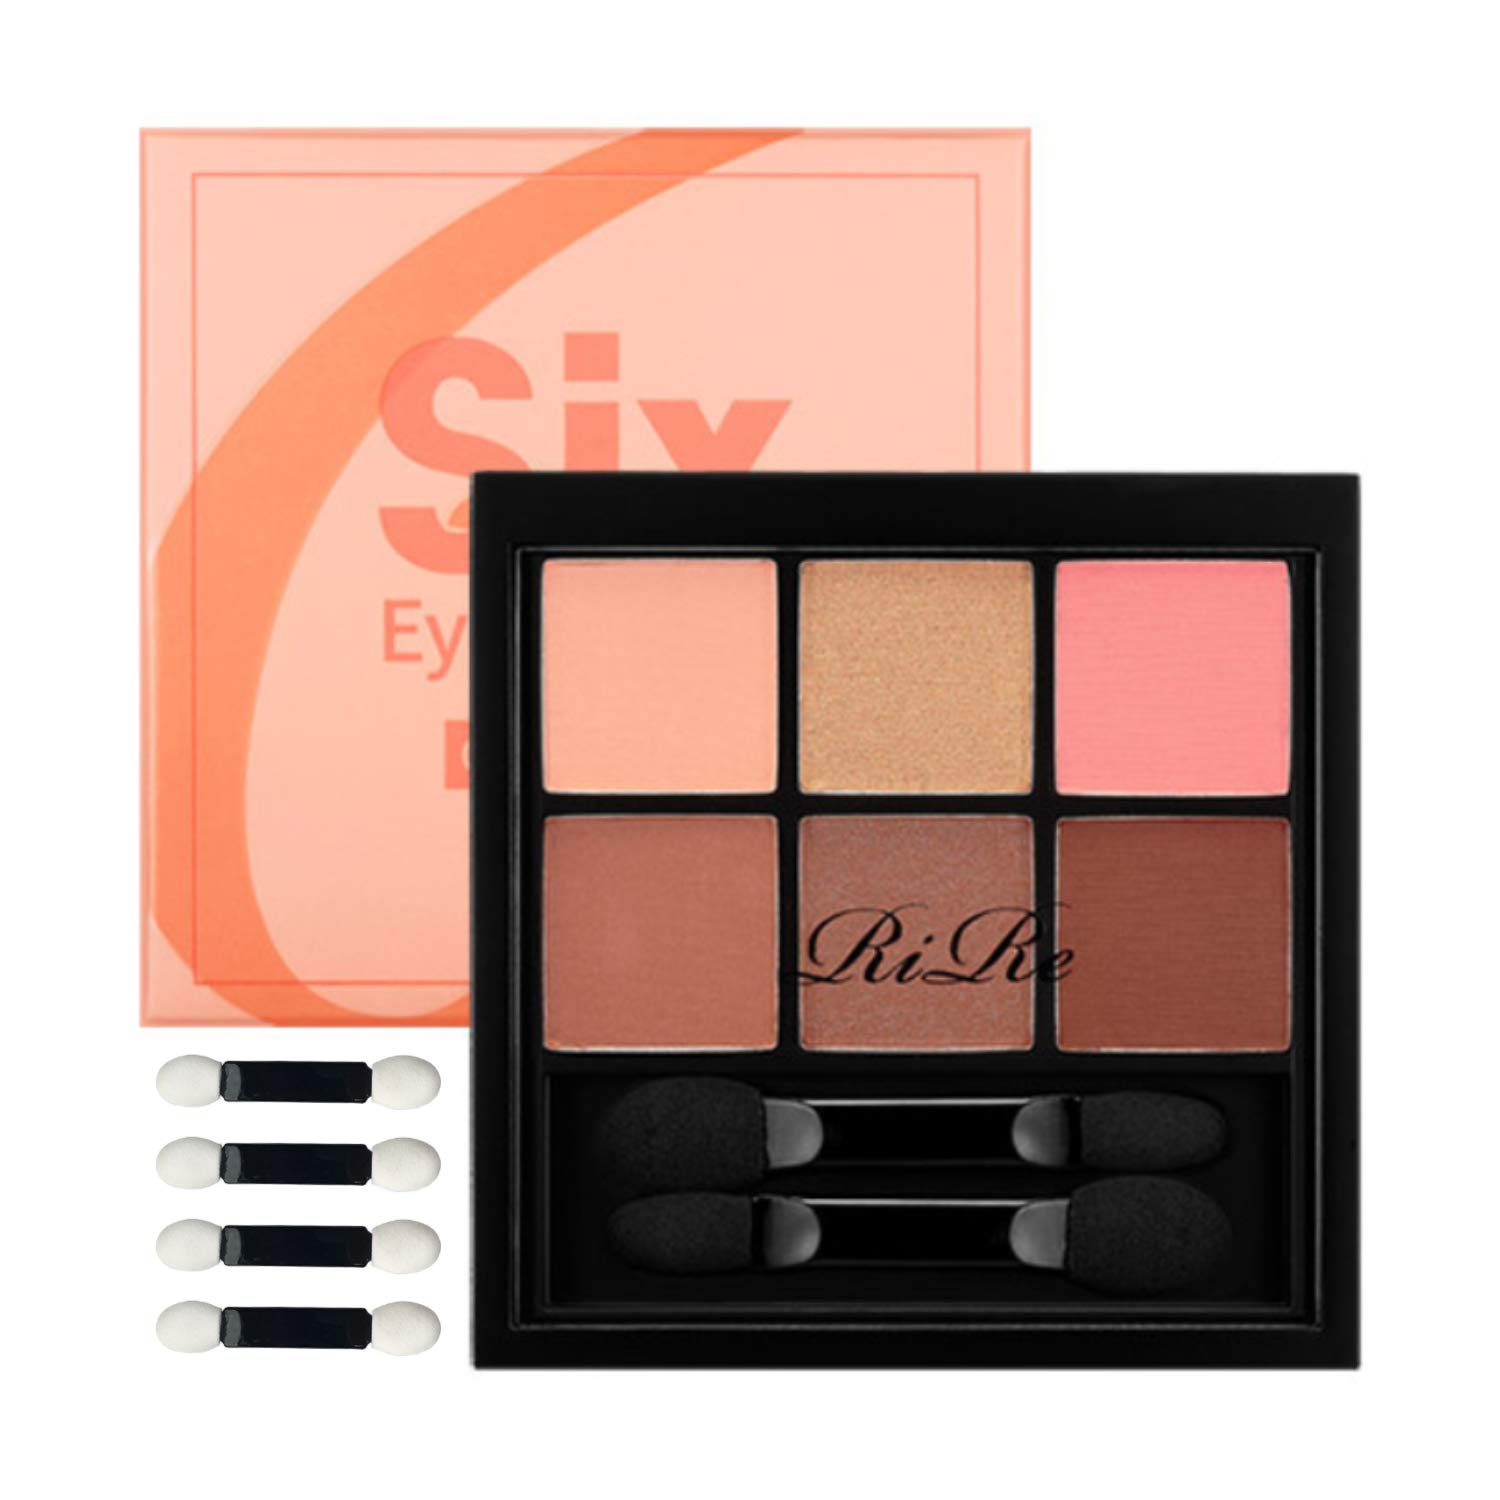 RiRe Six Eye Palette 6 Colors Eyeshadow Makeup Palette 8.4g \/ 0.3 oz with Eyeshadow Brushes (Coral Mood)